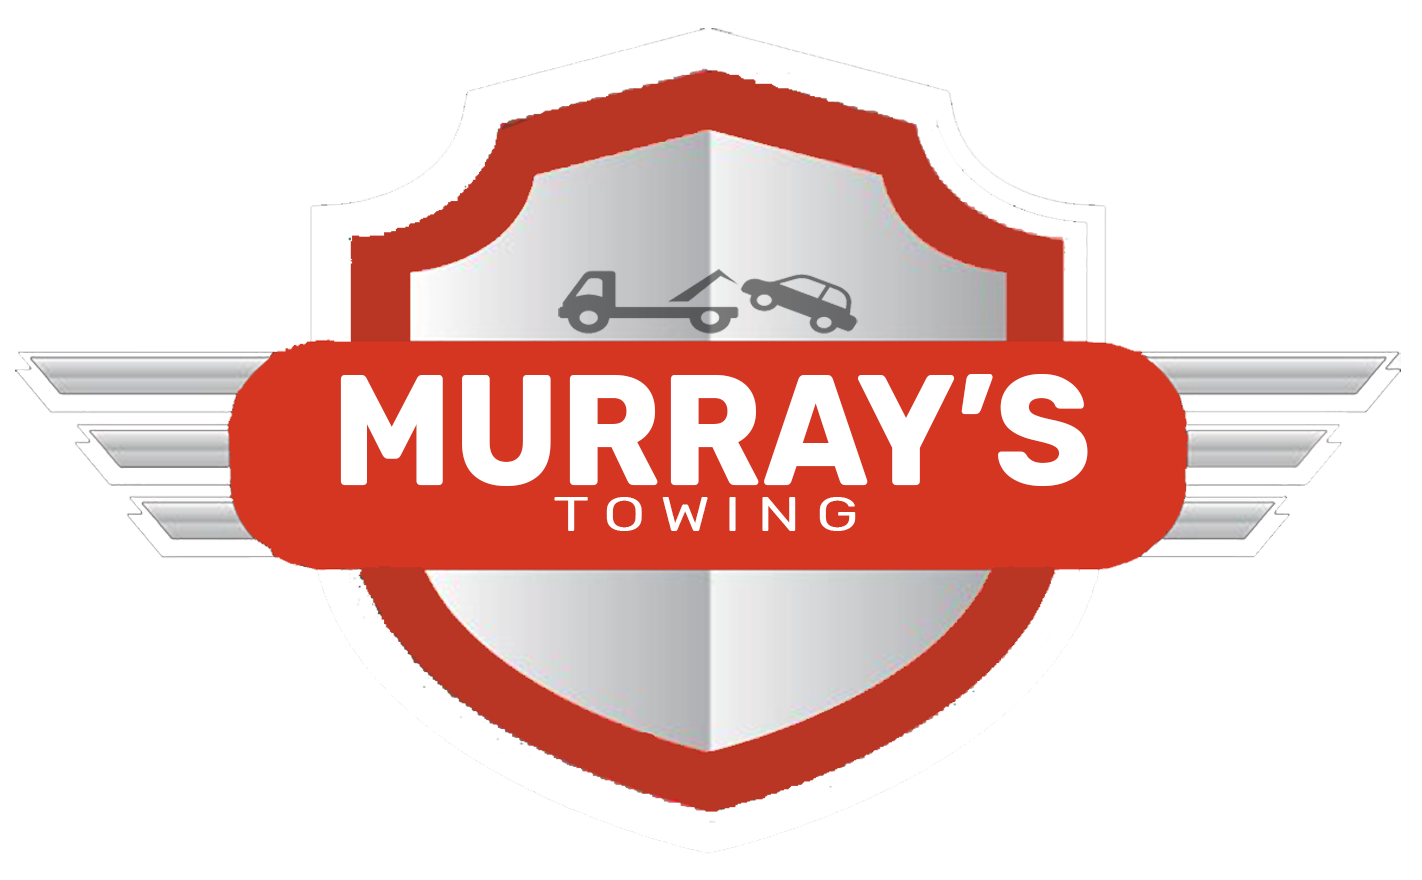 Murray's Towing